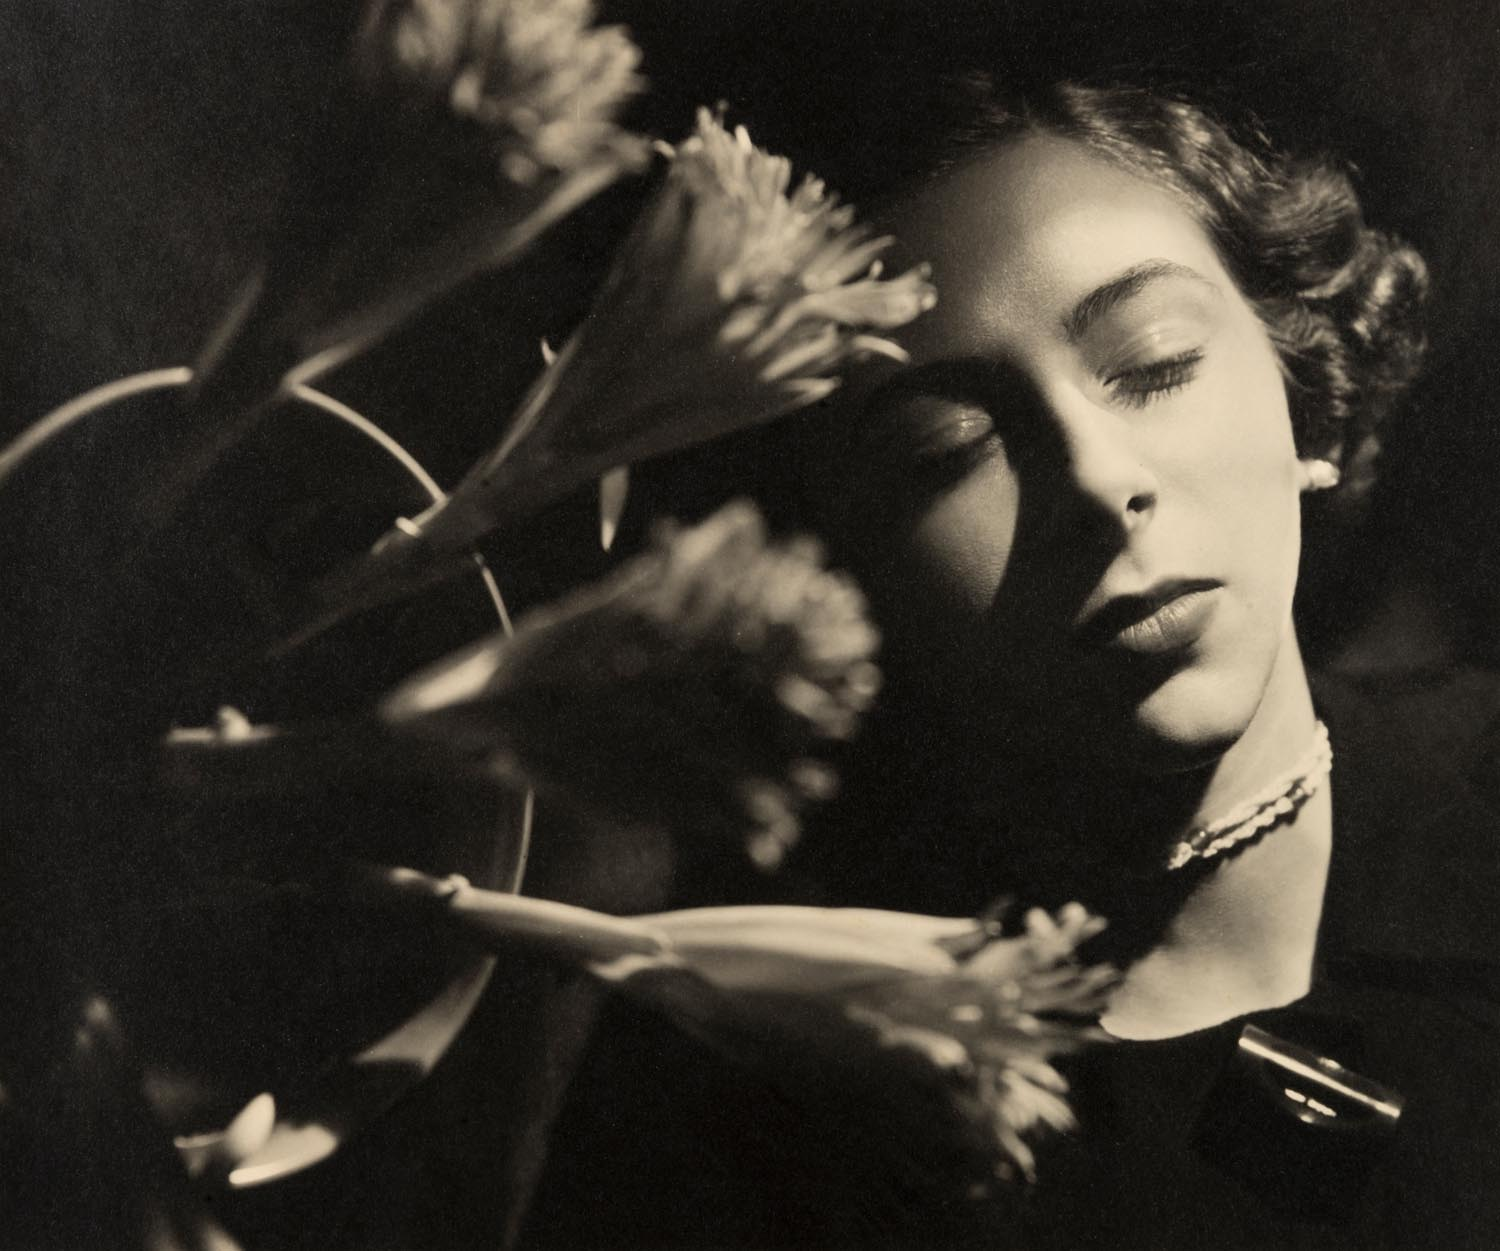 max dupain australia s greatest documentary photographer